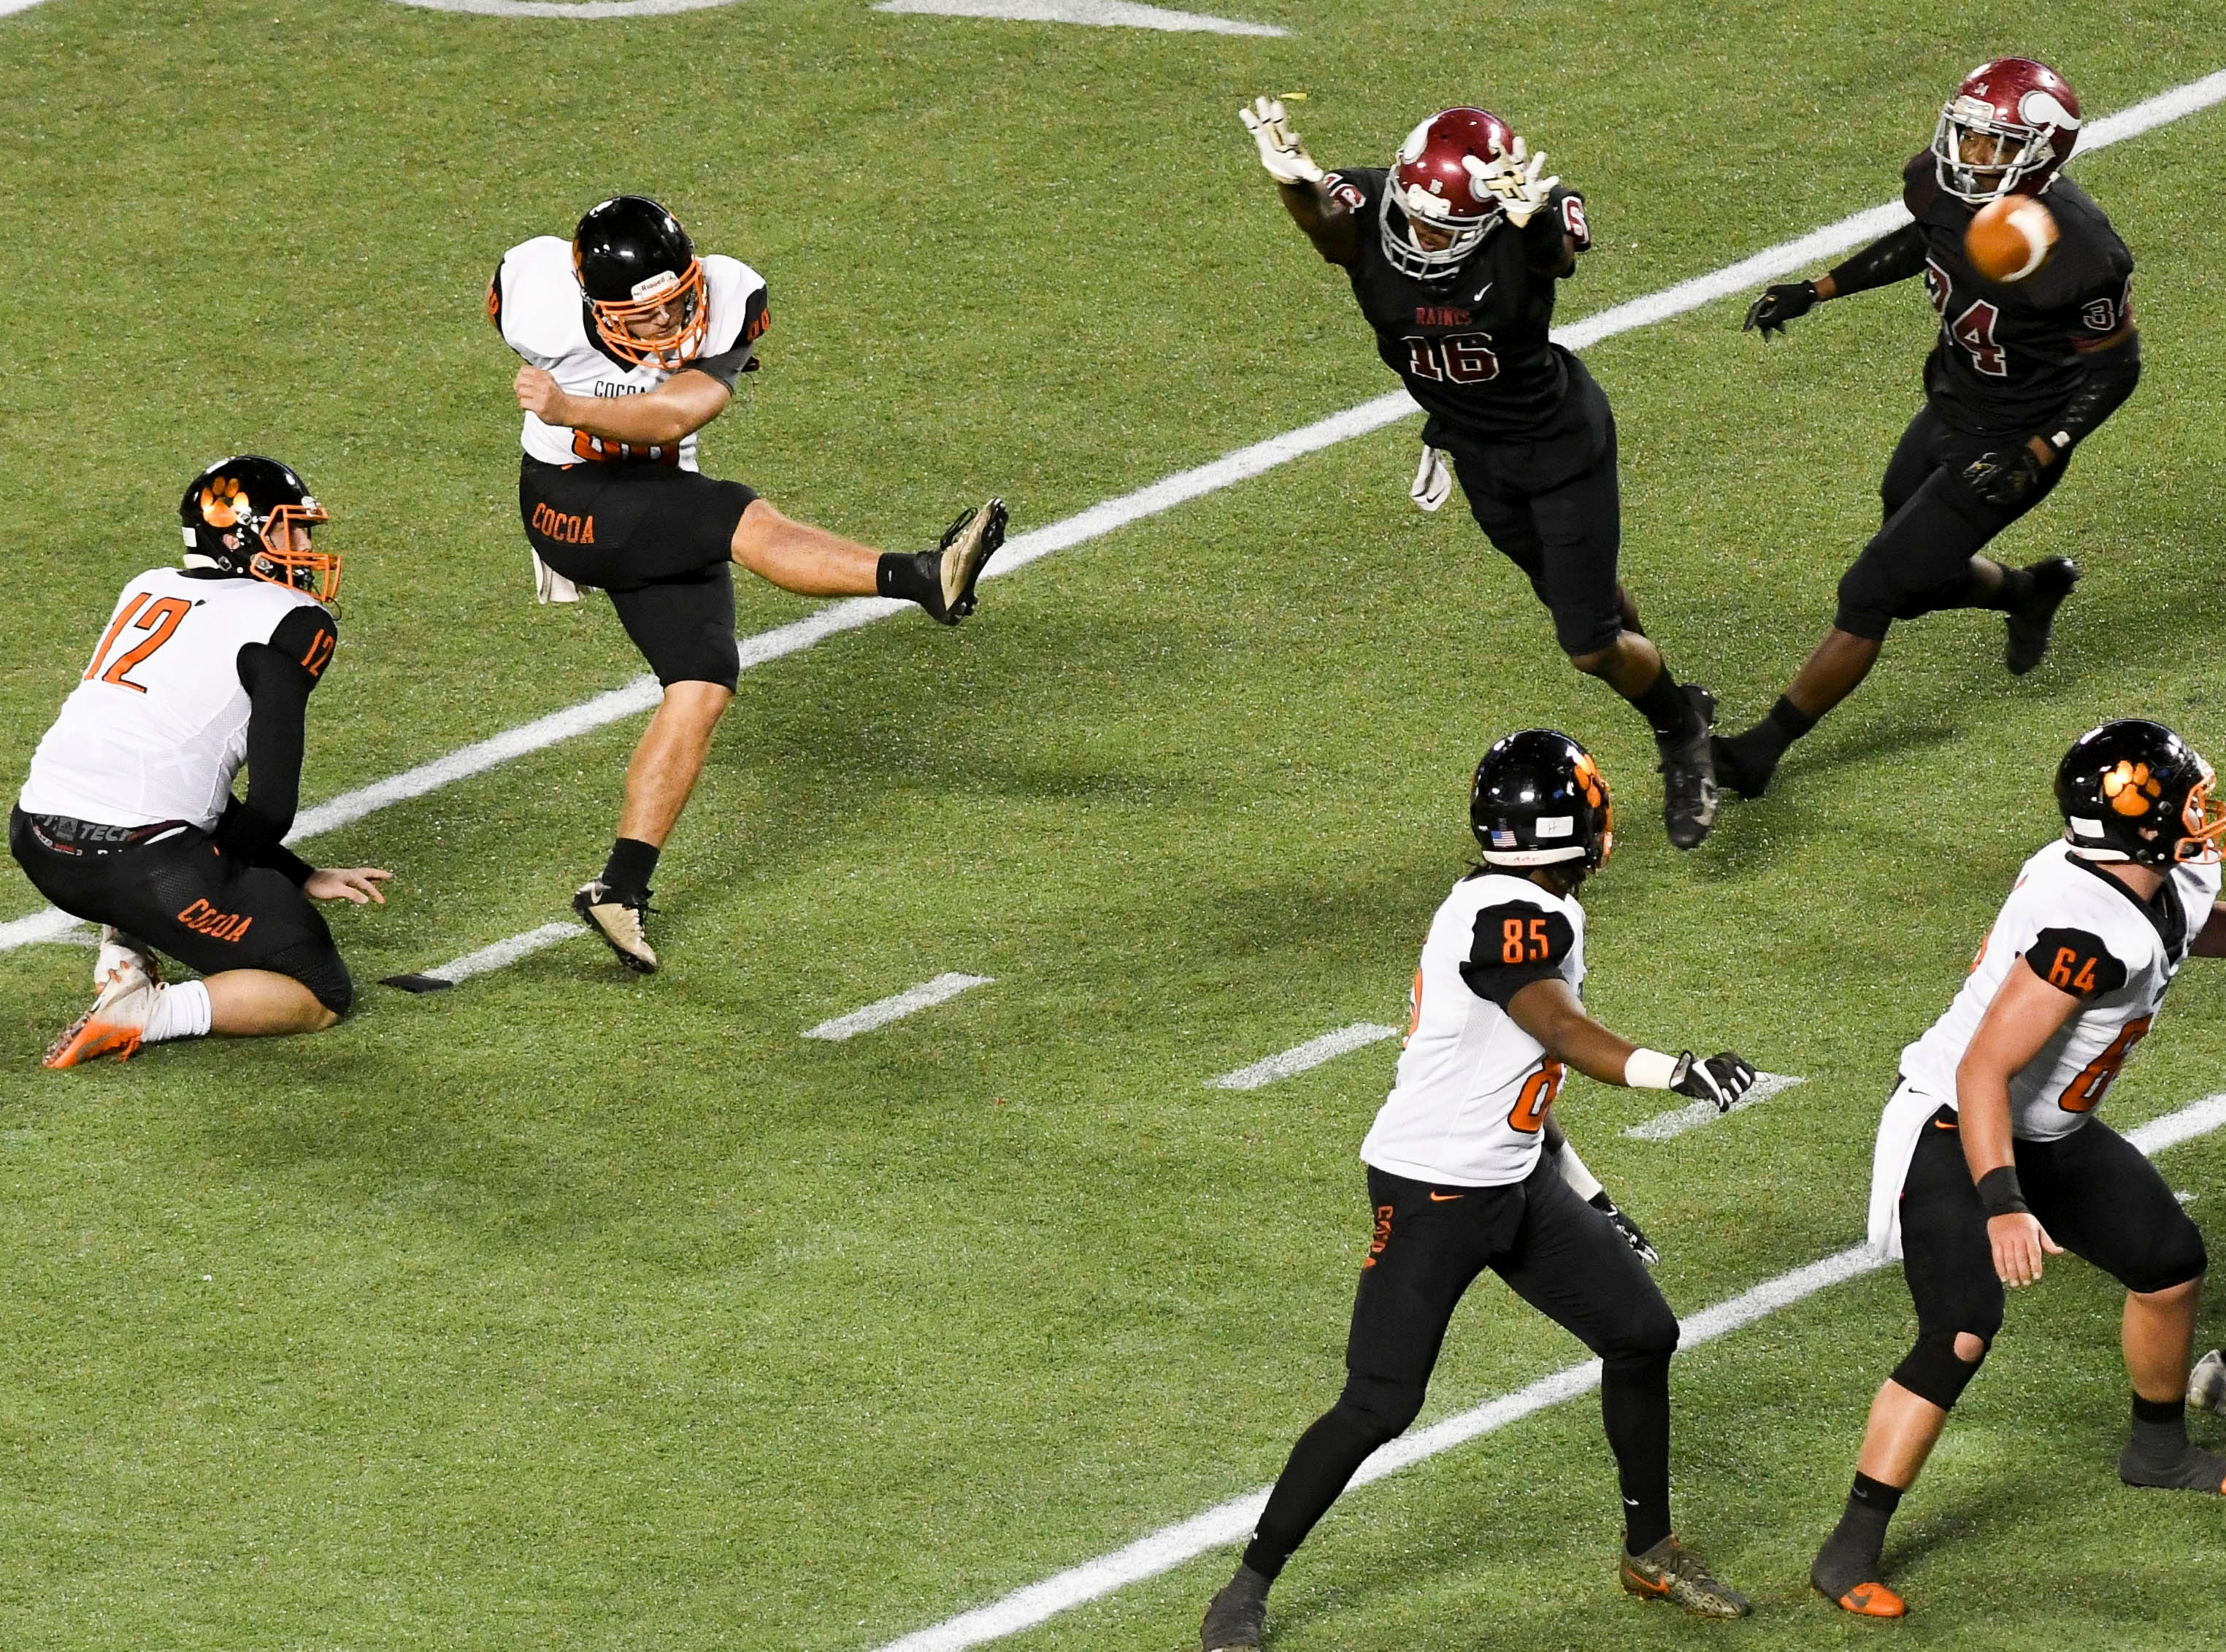 Cocoa's Alex Petruzzello attempts a field goal during Thursday's Class 4A football state championship game.